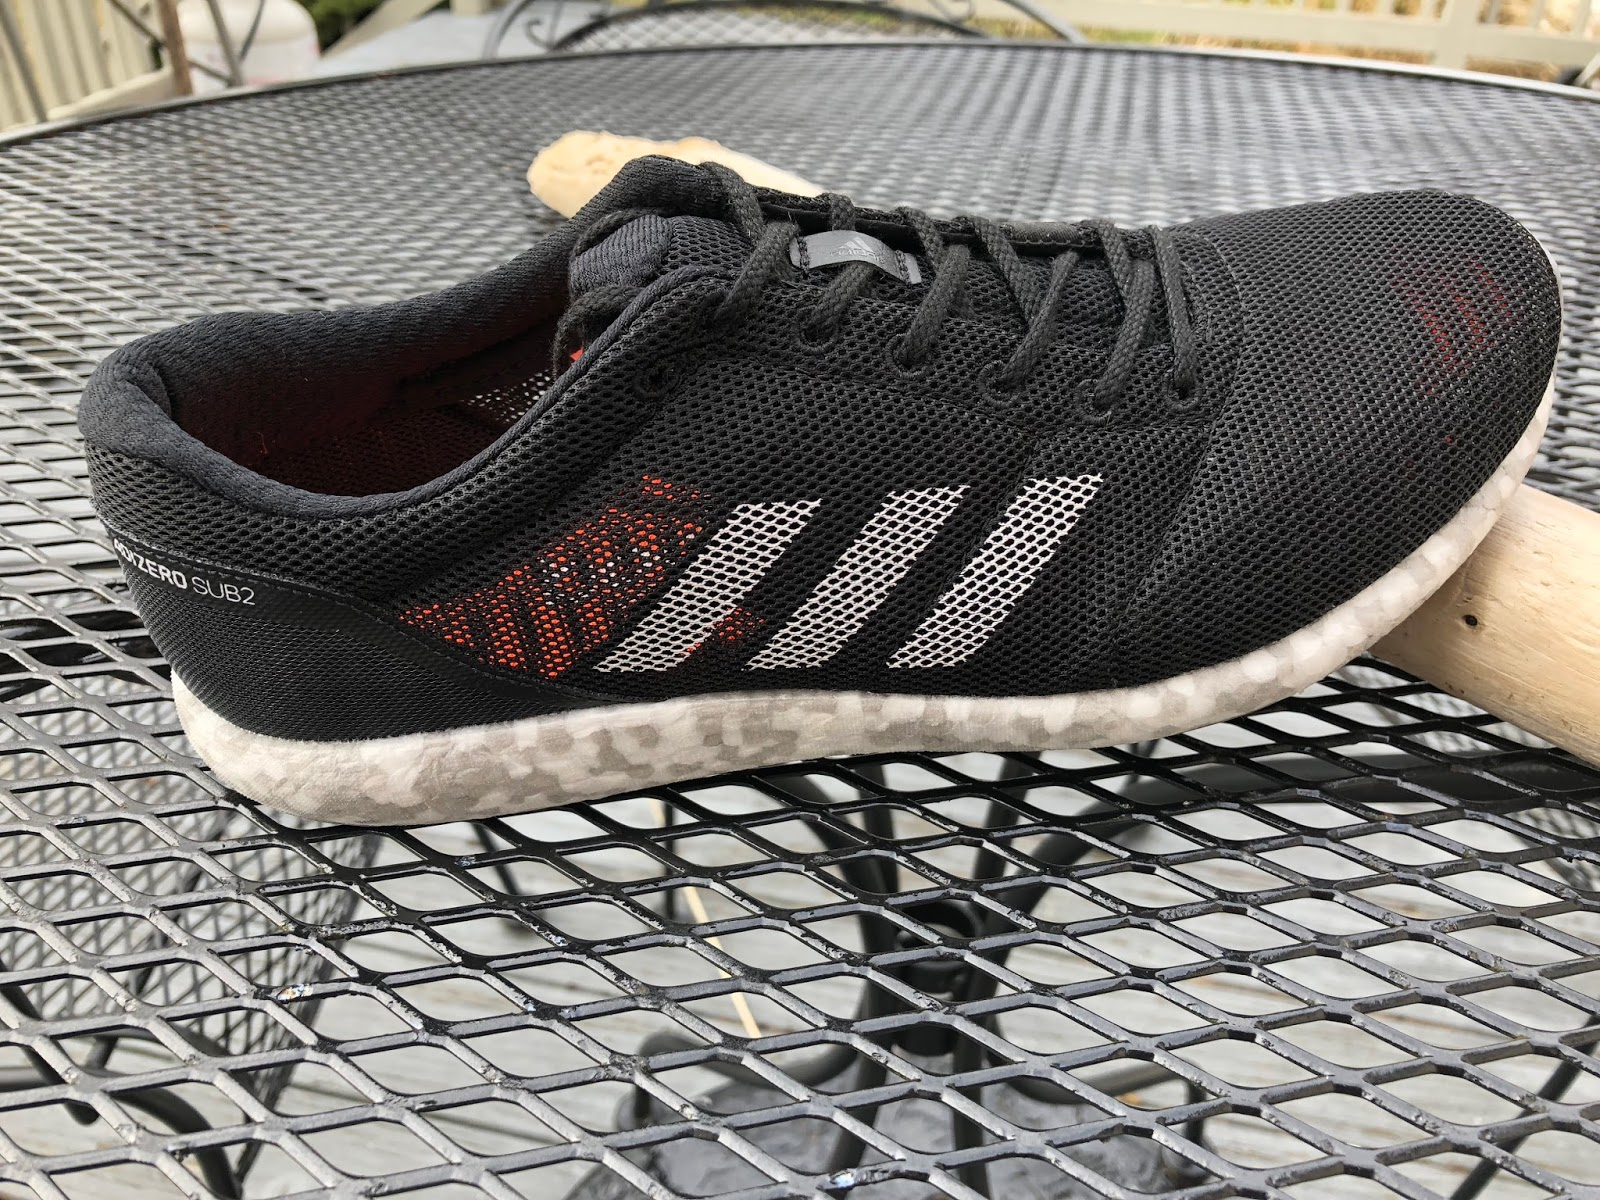 Peter  The midsole is where Sam and I begin to diverge here. I don t  particularly love Boost--I don t feel any real bounce or energy return from  it and it s ... f9412b376